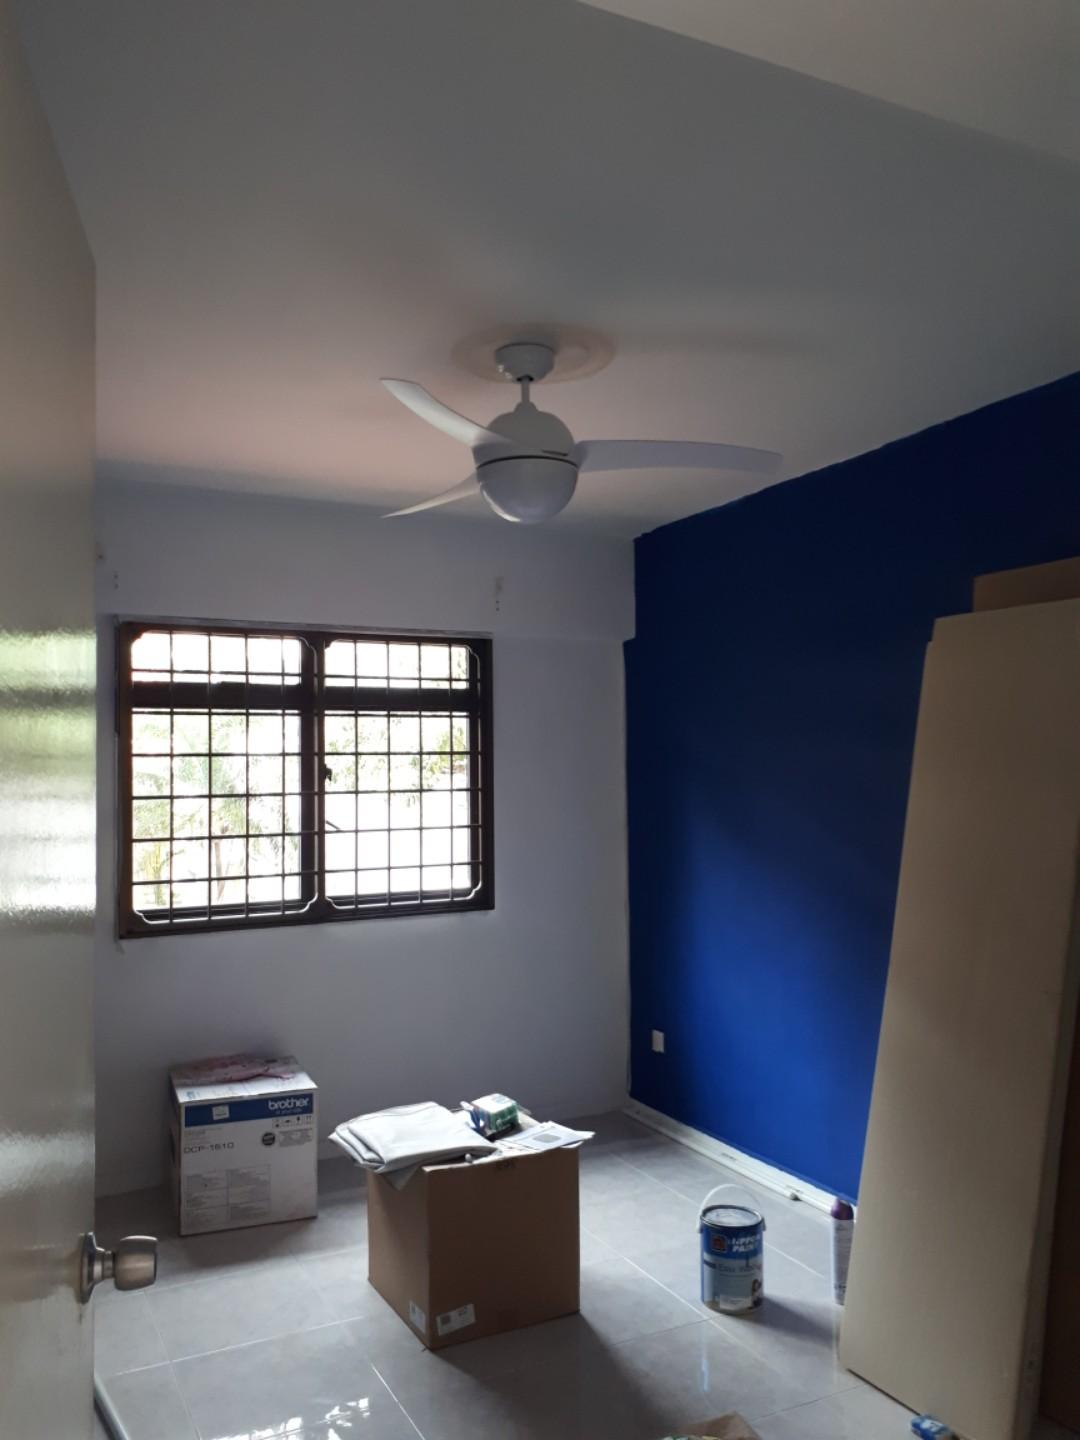 we do cheaper  & good quality  painting  service.  we give the best price